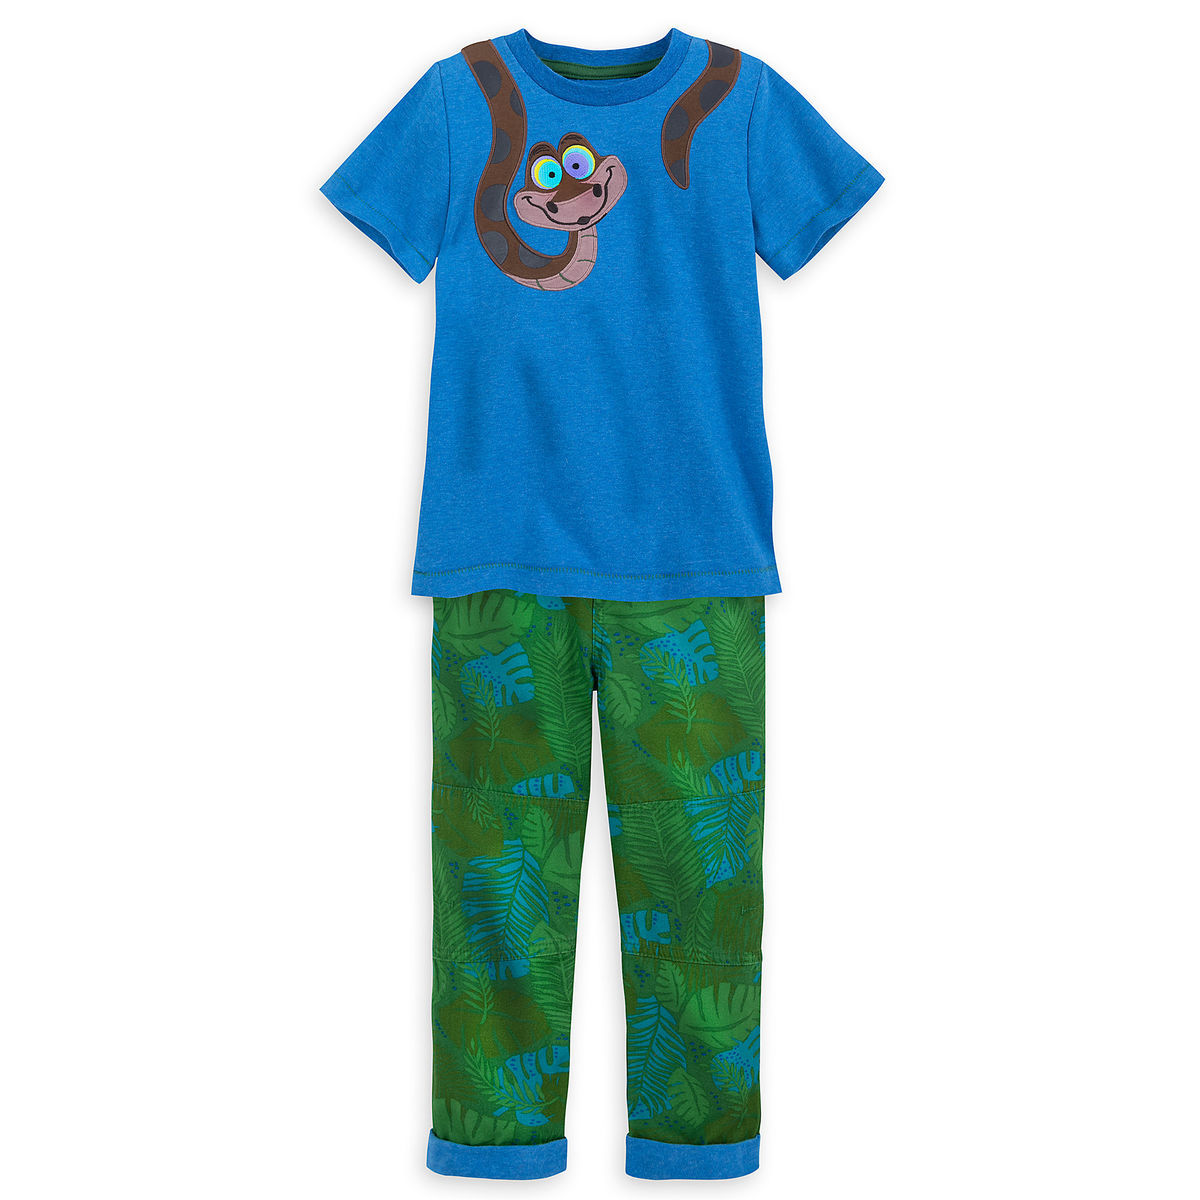 Product Image of Kaa Top and Pant Set for Kids - The Jungle Book   1 040daa7ac